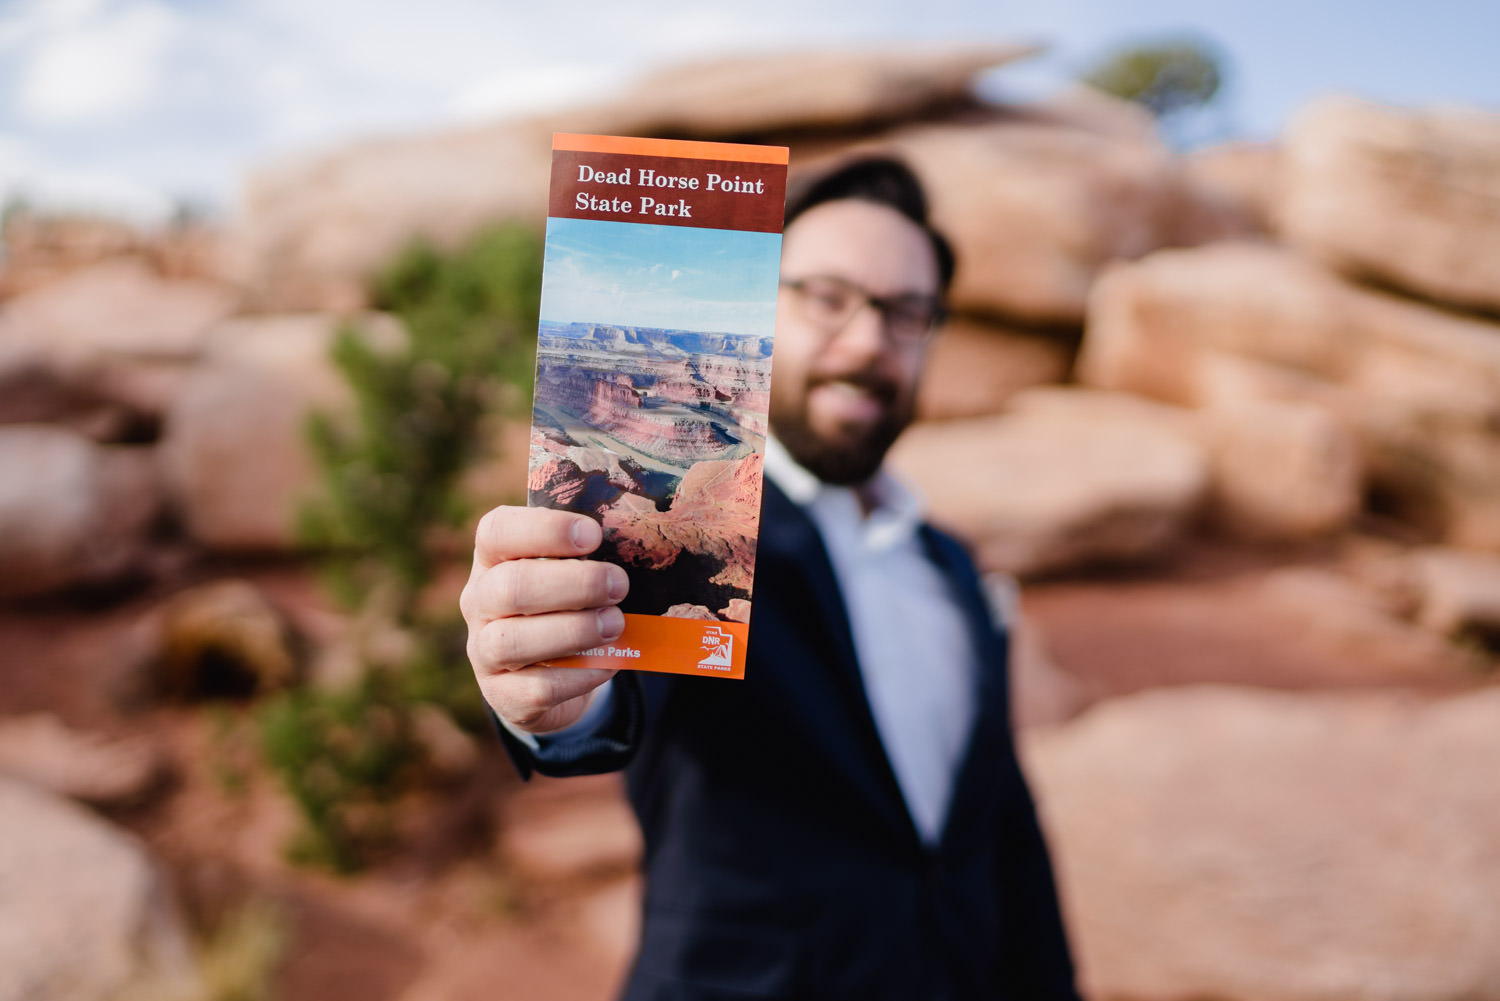 Dead Horse Point elopement state park brochure photo